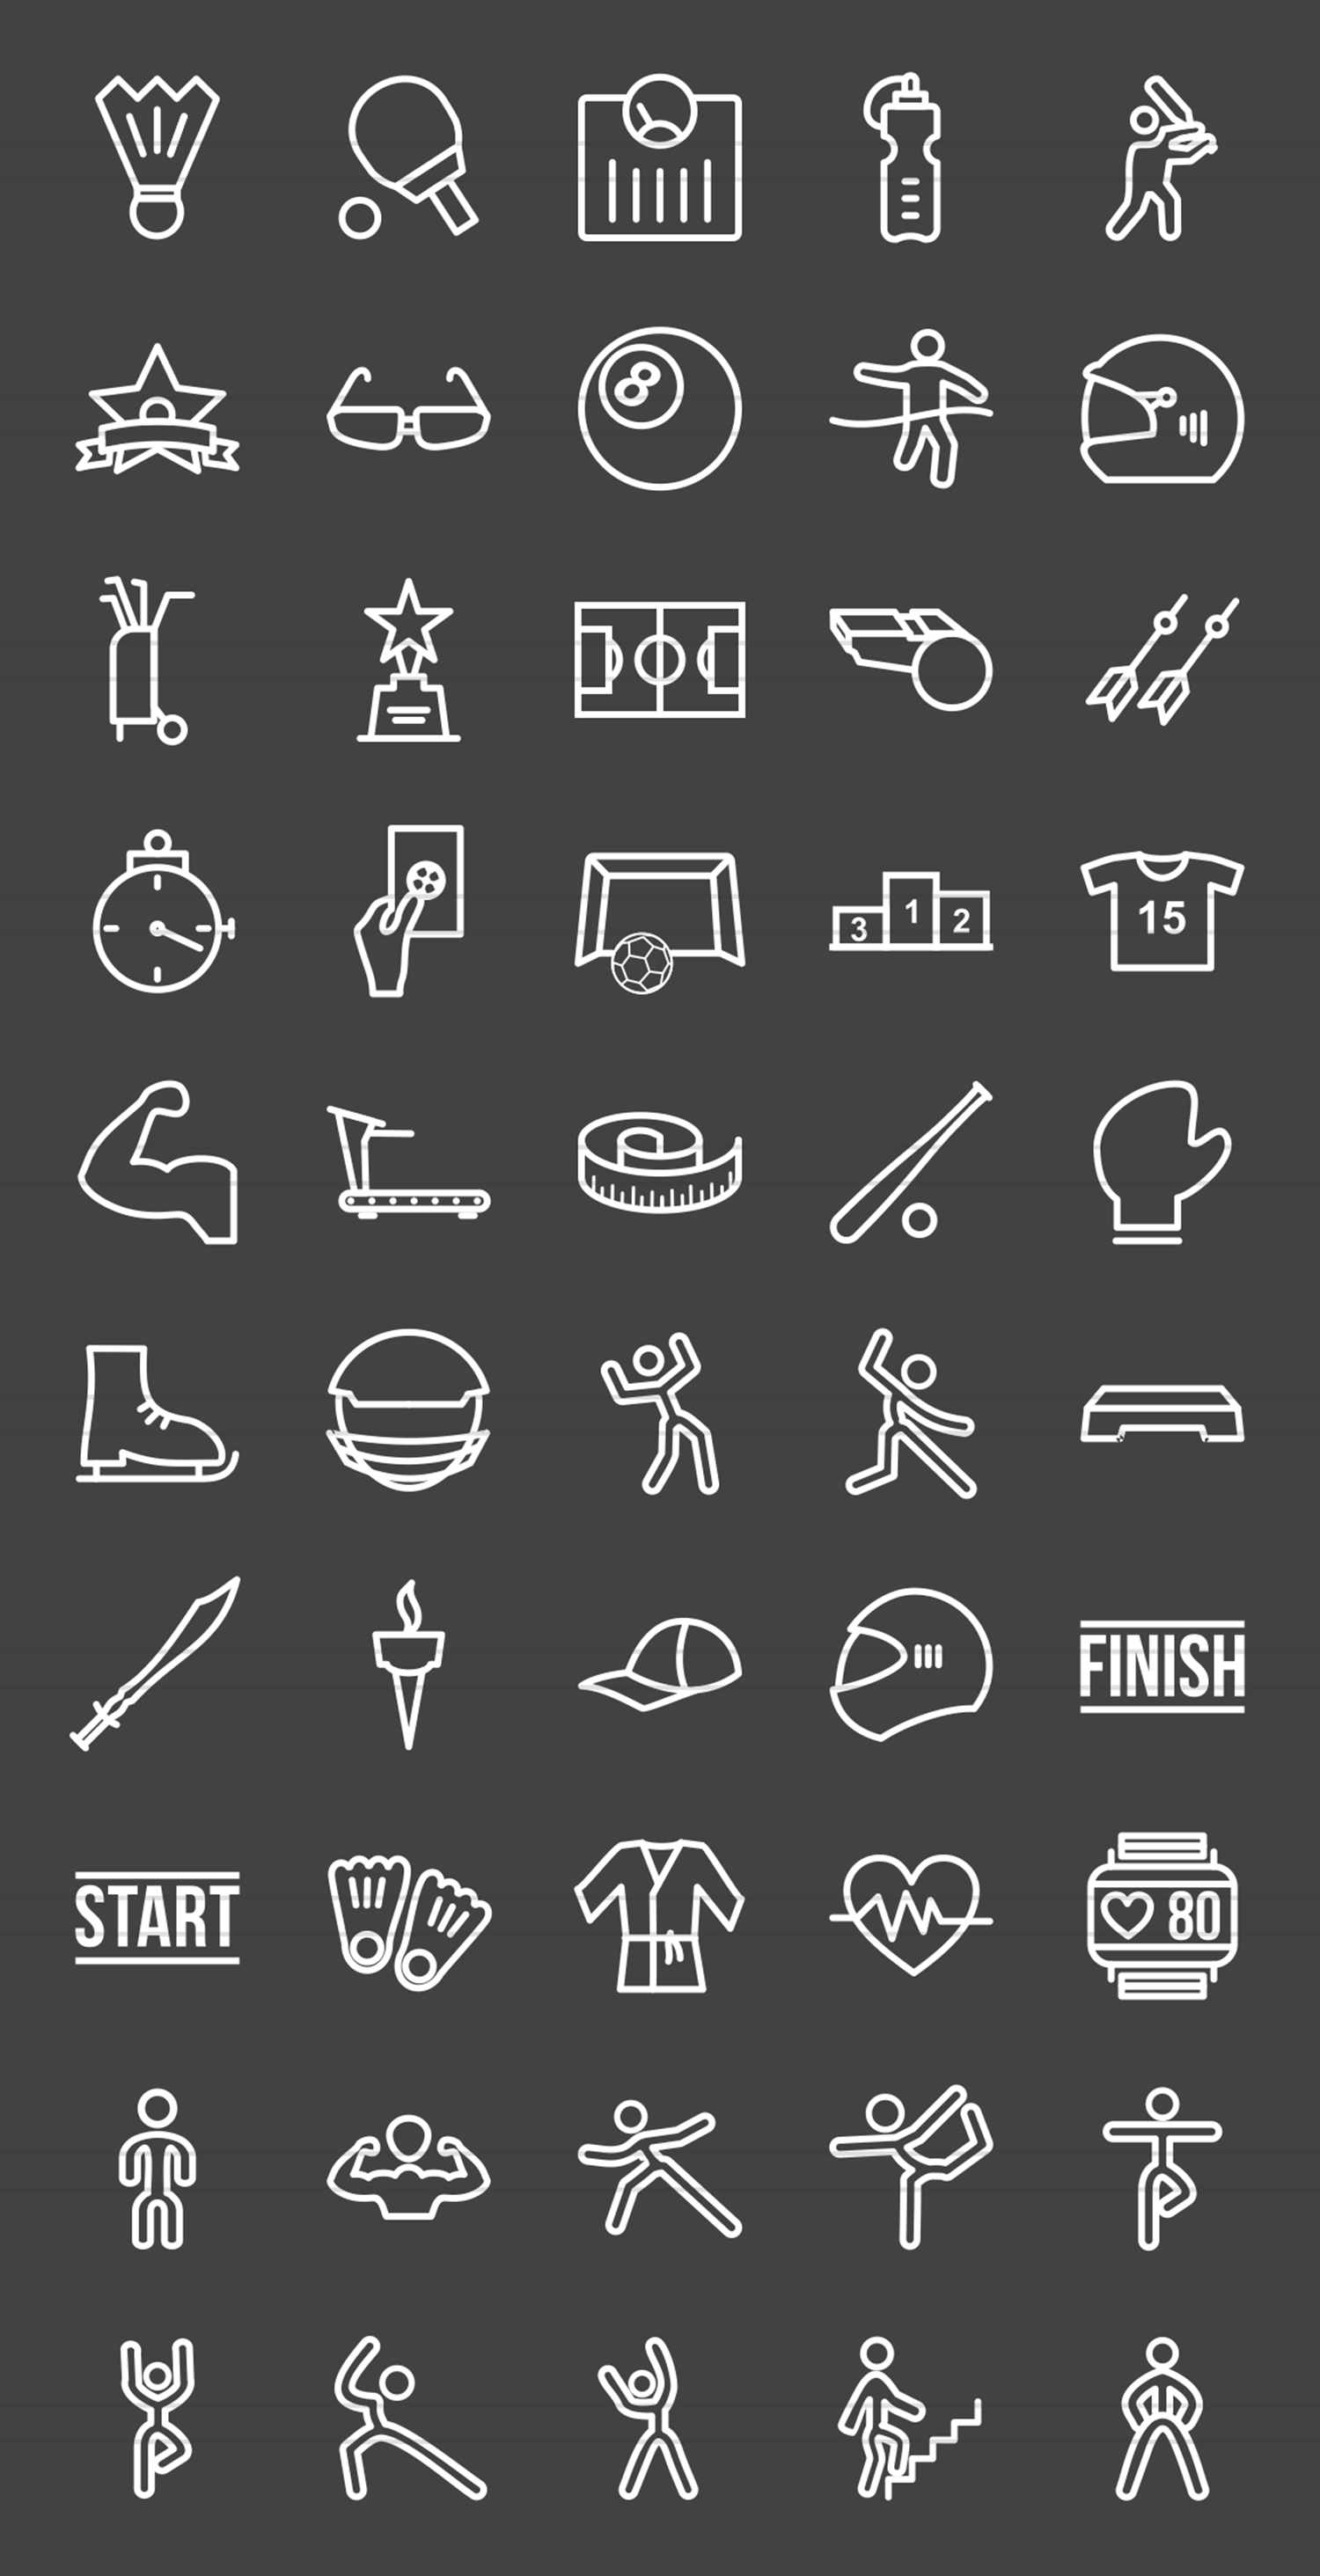 50 Fitness & Sports Line Inverted Icons example image 2